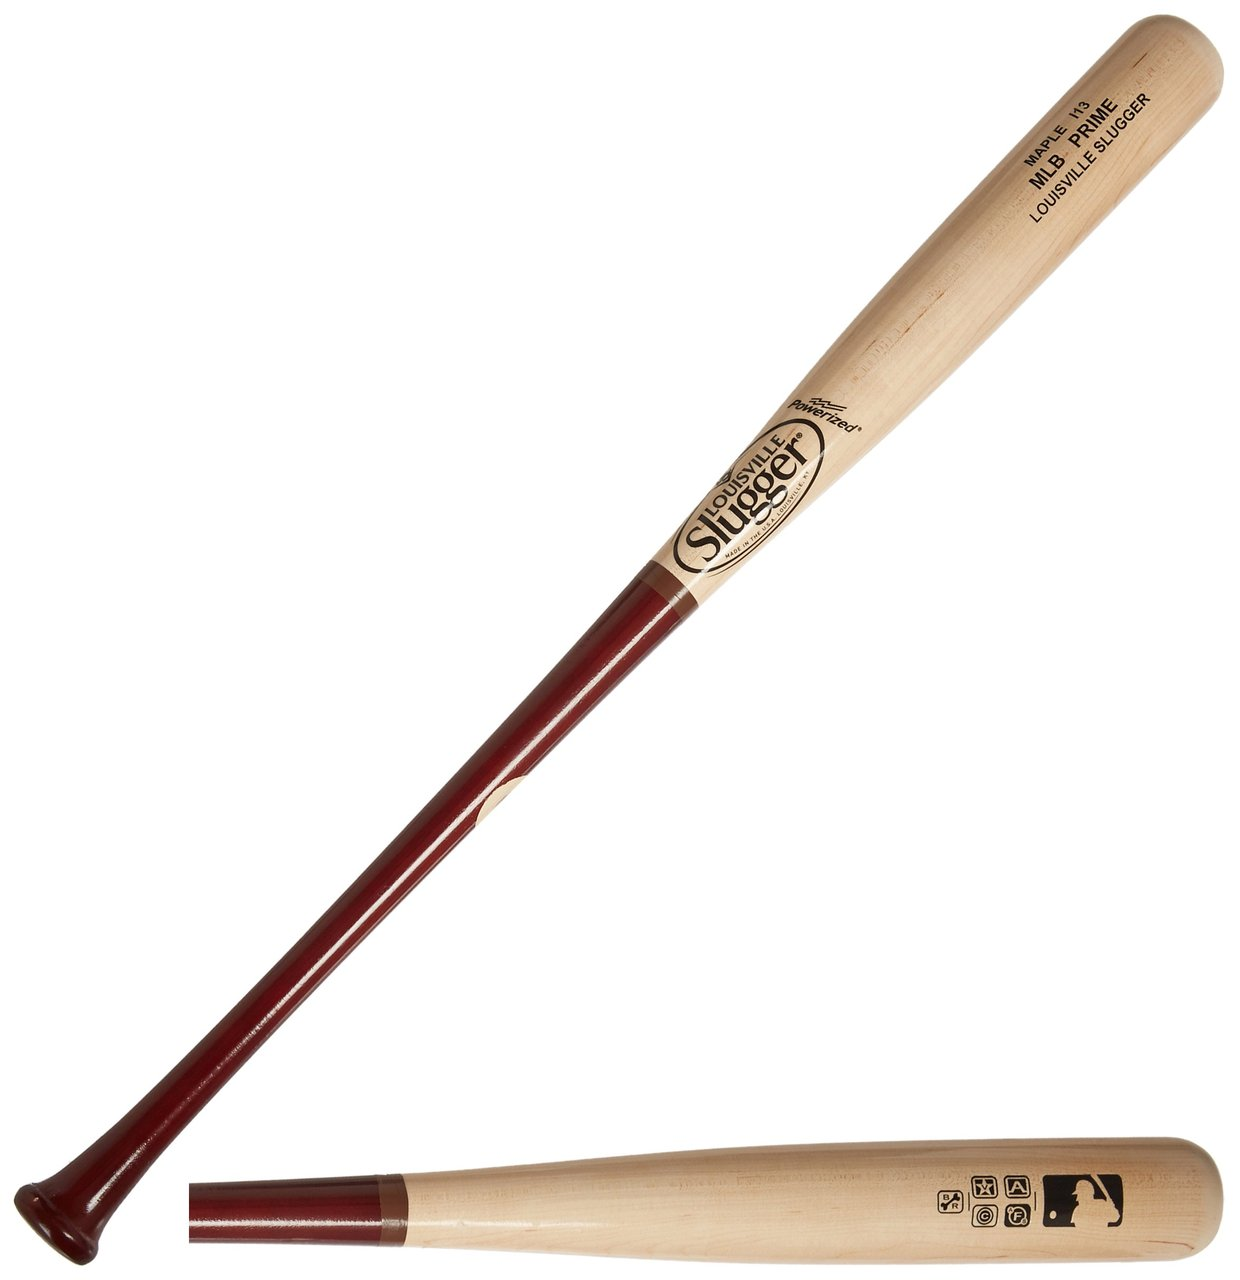 Louisville Slugger wood baseball bat MLB prime maple i13 turning model natural barrel hornsby handle. Inked. Bone Rubbed. HD Finished - MLB tested, MLB approved. Identical in quality and craftsmanship to what we send to the big leagues, MLB Prime features the top 3% of all wood we harvest, straighter and harder than any other bat – MLB Prime is big league wood. Graded for quality at 6 different stages from the time the tree is cut until the bat is finished, including the final step – the MLB ink dot slope of grain test. Veneer wood logs ensure maximum straightness and eliminate natural defects developed during tree growth. Vacuum drying guarantees the entire billet is dried evenly and at a pace healthiest for the wood. Bone rubbing compresses every cell to ensure your bat is as hard as it can get. Advanced finishing process (HD Finish) provides the final touch, solidifying the manufacturing processes so your bat is identical to the bats used by big league guys. Maple, the species preferred by most pro players, features the ultimate surface hardness and provides an unmatched sound and feel at contact. Naturally harder, maple offers added strength at impact. Closed grains eliminate flaking, commonly seen with ash, allowing superior durability against delamination. The large barrel of the I13 – among the top 3 turning models order by the pros – is best suited for stronger hitters with quick hands who prefer a more end loaded swing weight. Power is the result with the increased force at batball impact providing added jump off the bat. -Handle: 1516 -Barrel: Large-Turning Model I13 End Loaded Swing Weight -Cupped: Yes -MLB Ink Dot: Yes